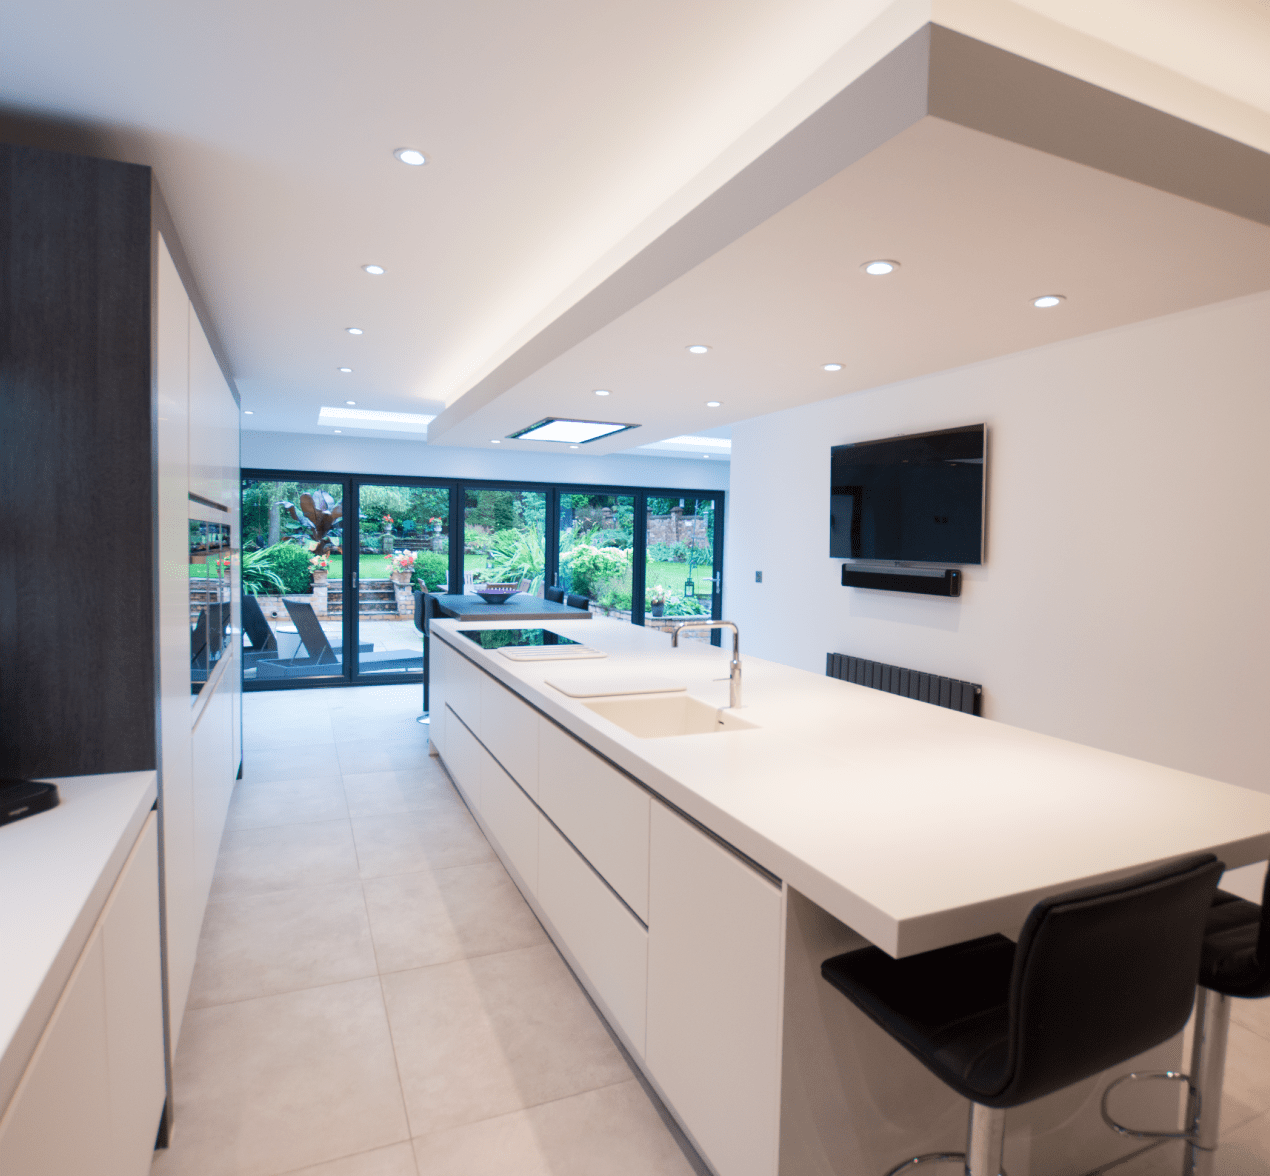 Kitchen Design Centre Hollinwood The Contemporary Family Kitchen For Customers In Stockport